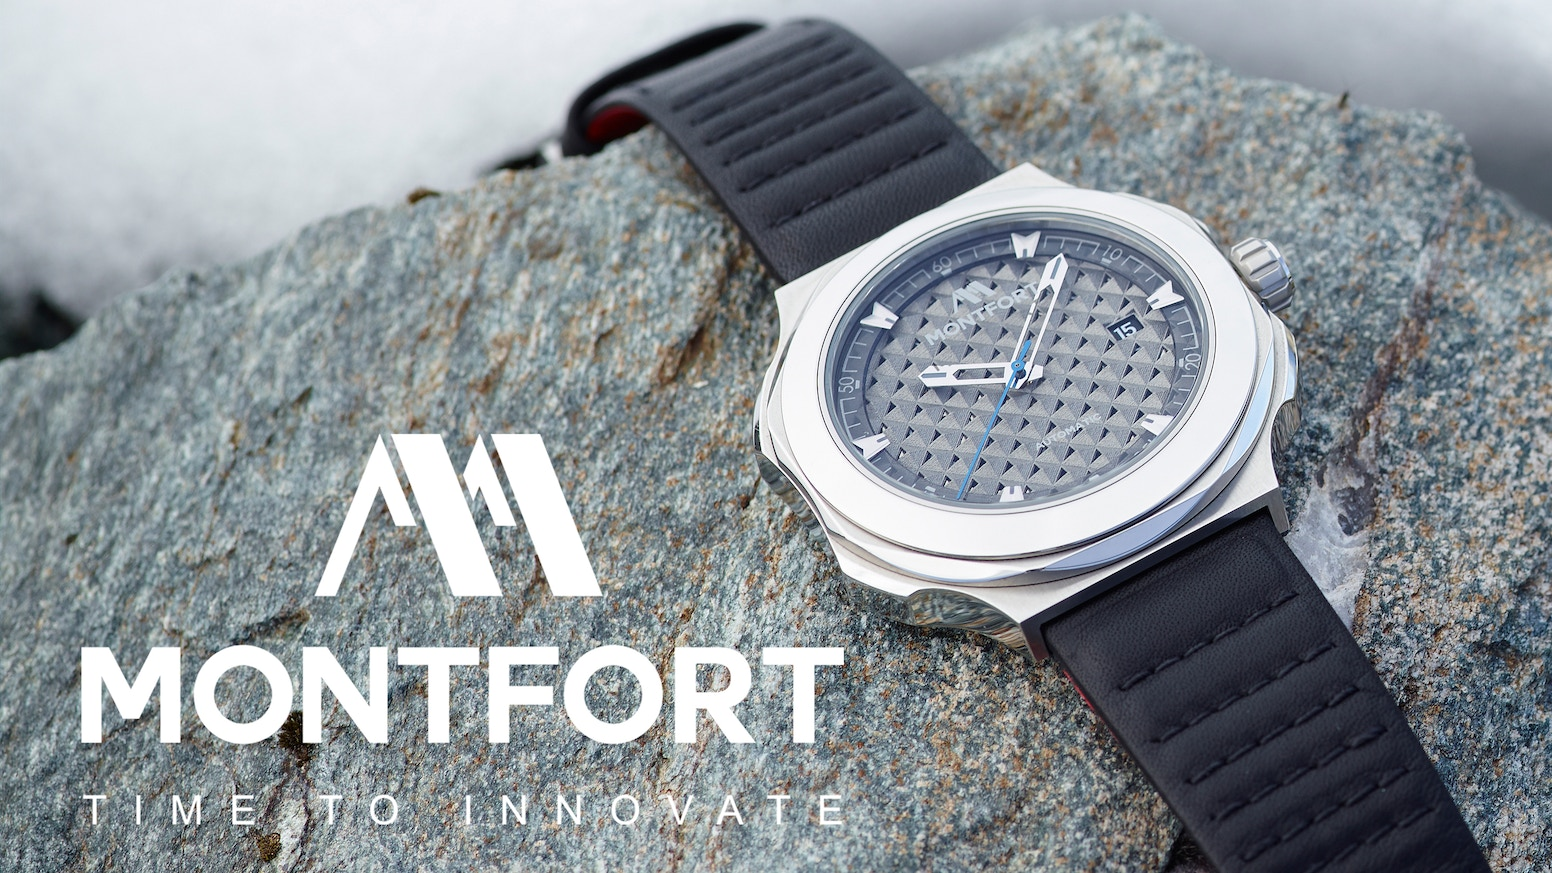 Montfort design and build exciting Swiss automatic watches that integrate innovative and unique technologies.